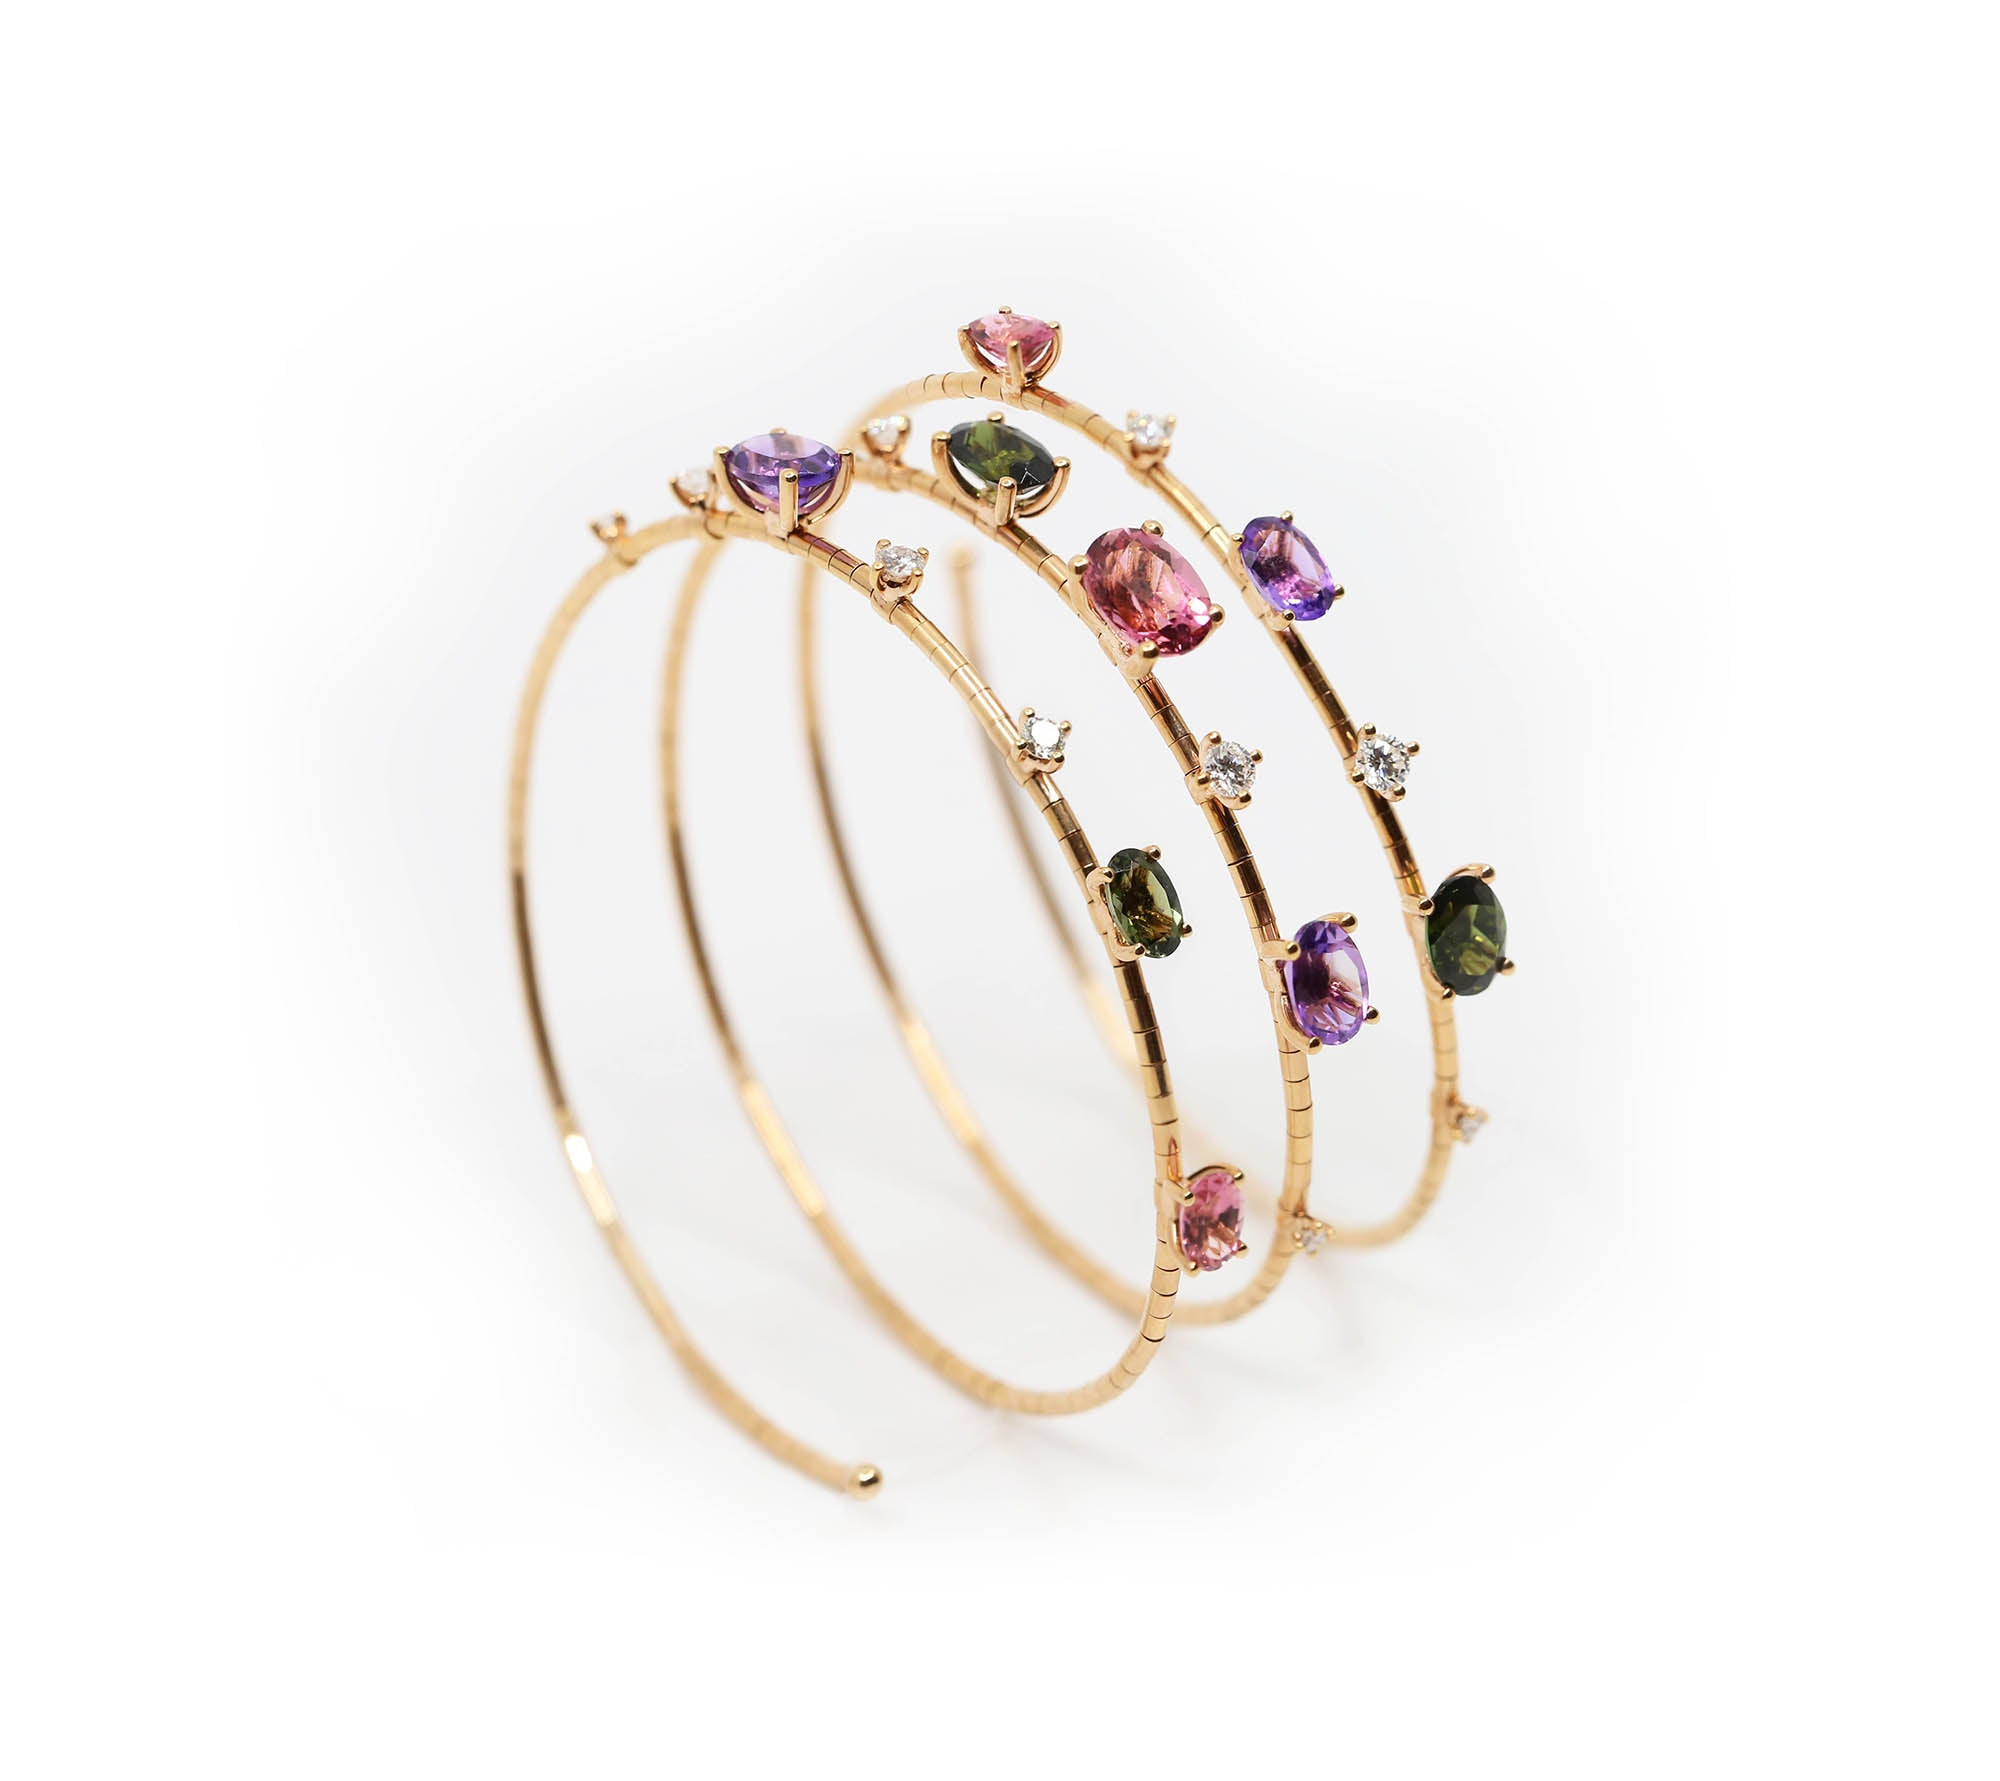 Diamond and Tourmaline Triple Wrap Bracelet